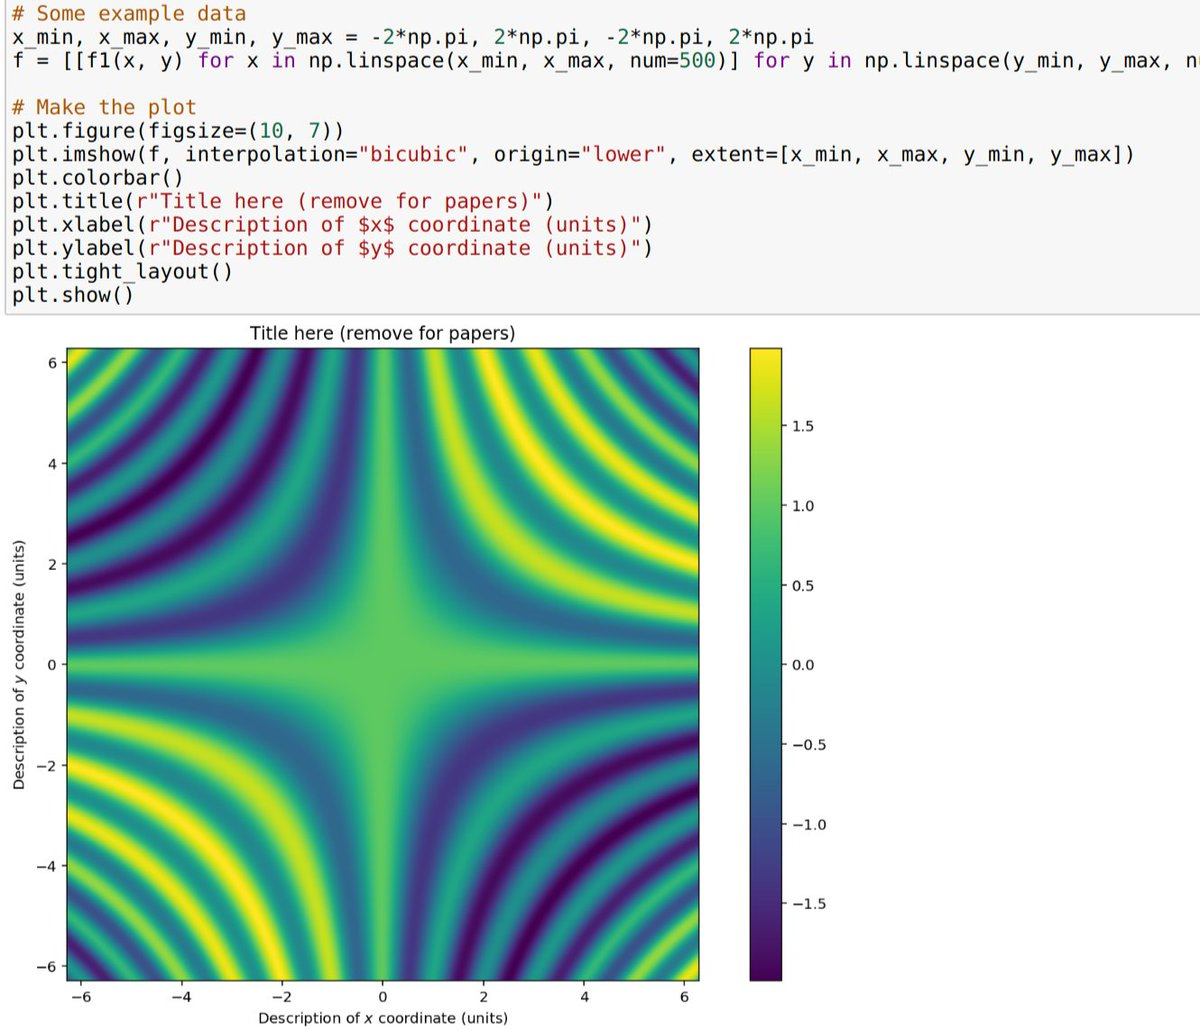 Matplotlib colorbar unit label